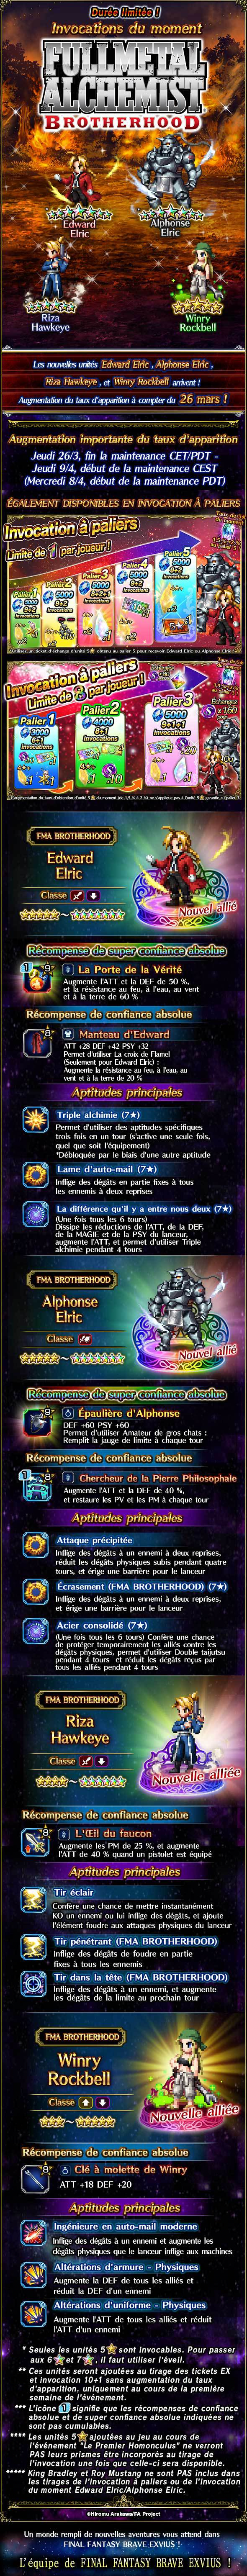 Invocations du moment, boutique d'échange, tickets 5★ garantie et tickets d'échange - Collab FMA (Edward Elric/Alphonse Elric) - du 26/03 au 09/04/20 20200324FMAEdwardAlphonseFeaturedSummon